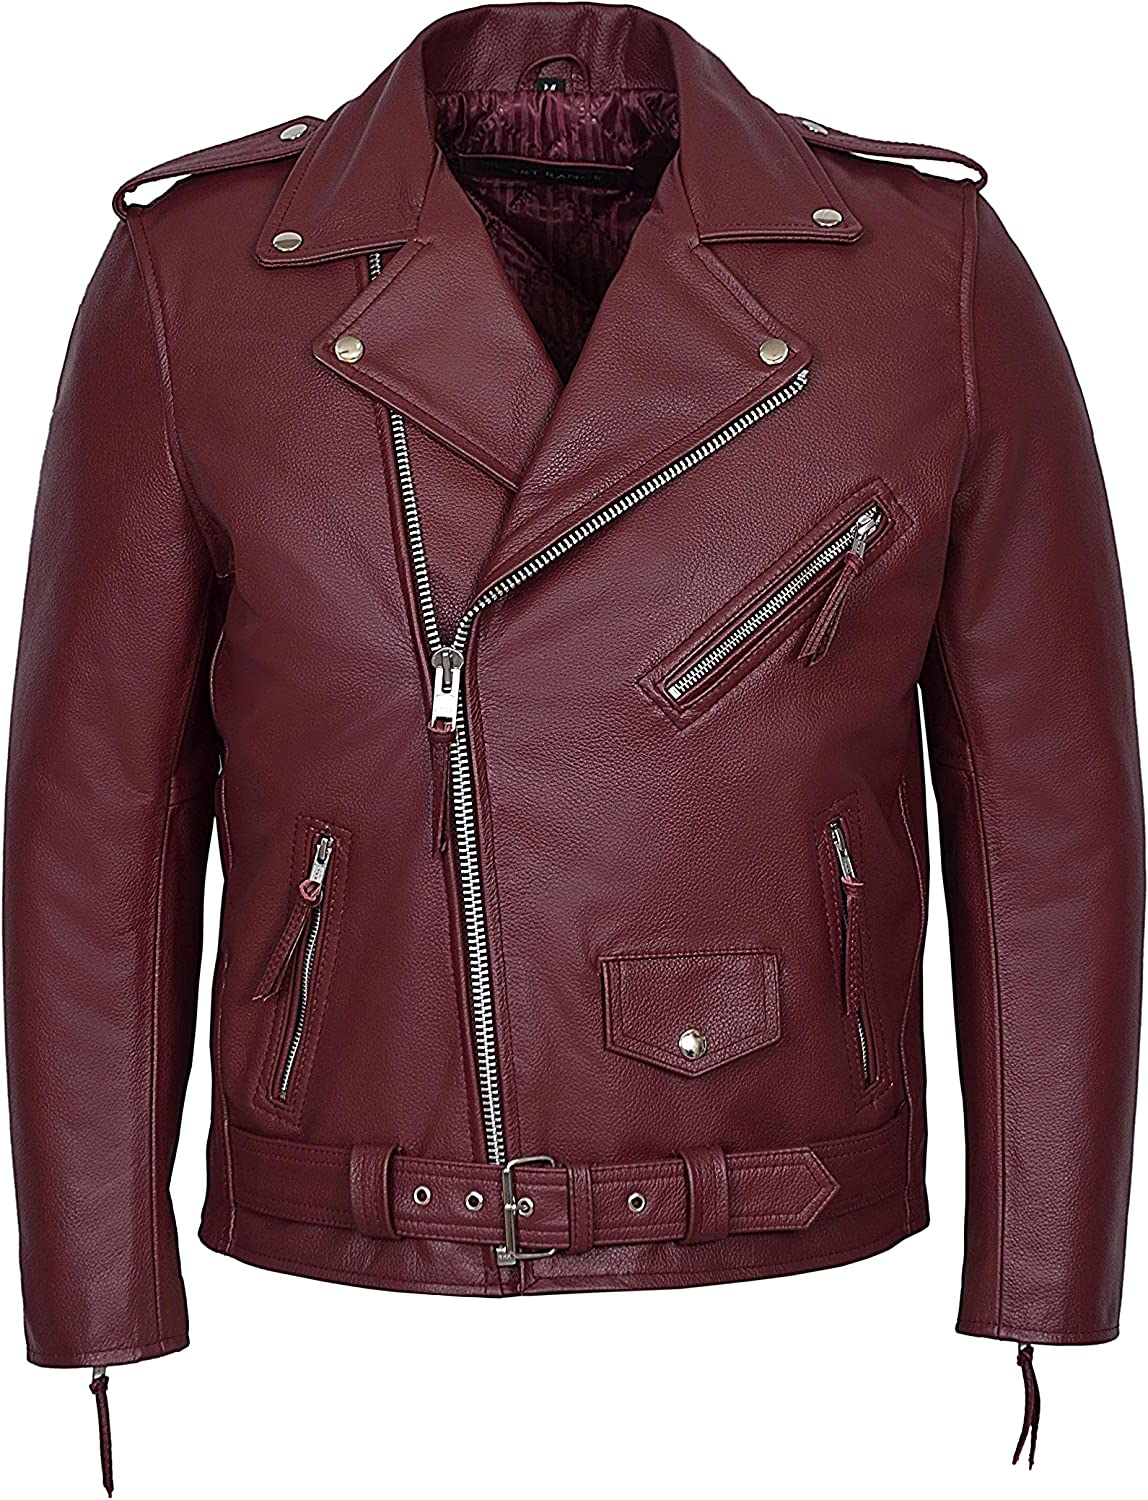 Brando Cherry Red' Men's Classic Design Motorcycle Biker Cowhide Real Leather Jacket MBF